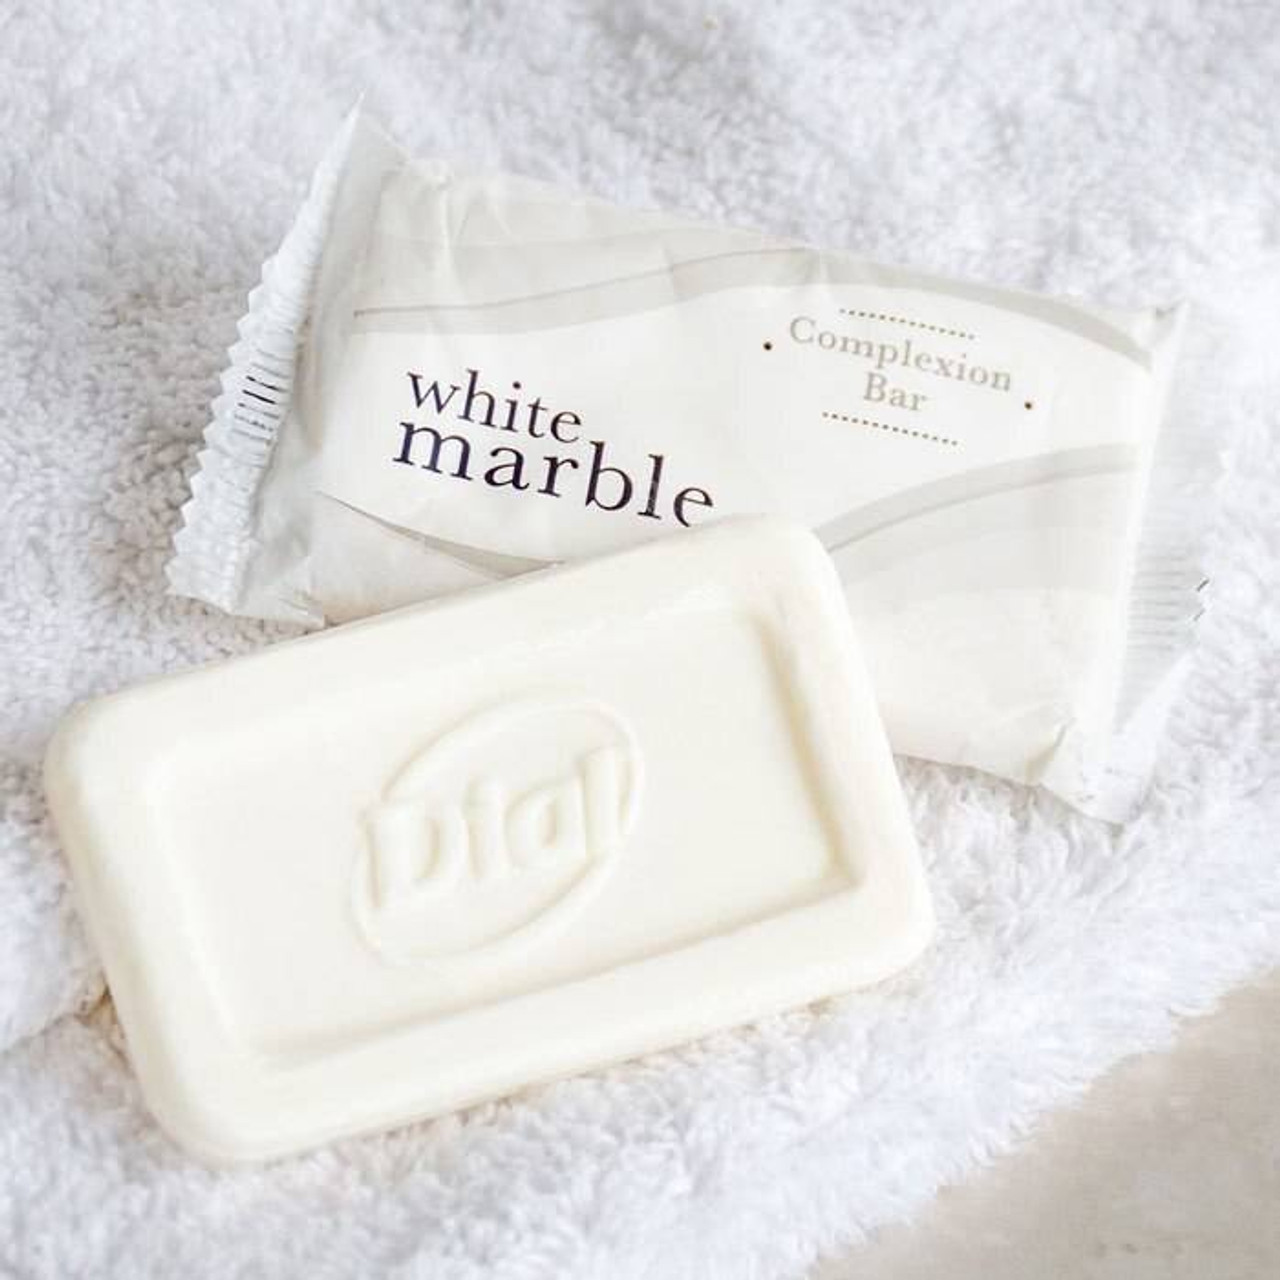 WHITE MARBLE or DIAL BASICS or COMPLEXION BAR SOAP